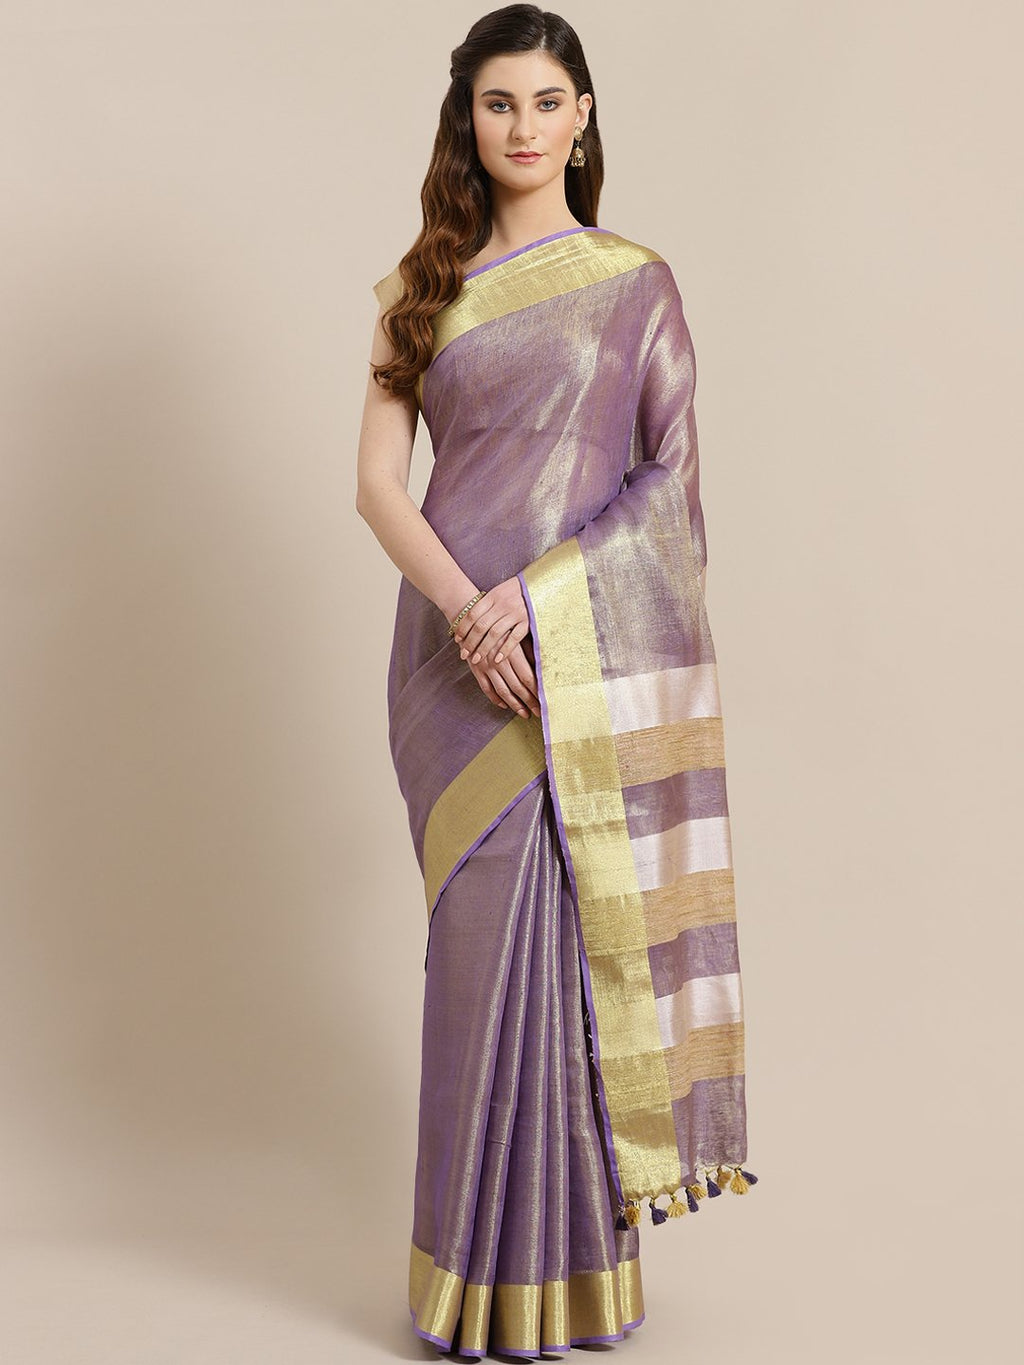 Purple Golden Dual Tone Solid Handwoven Saree-Saree-Kalakari India-ALBGSA0019-Hand Woven, Sarees, Sustainable Fabrics, Tissue, Traditional Weave-[Linen,Ethnic,wear,Fashionista,Handloom,Handicraft,Indigo,blockprint,block,print,Cotton,Chanderi,Blue, latest,classy,party,bollywood,trendy,summer,style,traditional,formal,elegant,unique,style,hand,block,print, dabu,booti,gift,present,glamorous,affordable,collectible,Sari,Saree,printed, holi, Diwali, birthday, anniversary, sustainable, organic, scarf, o